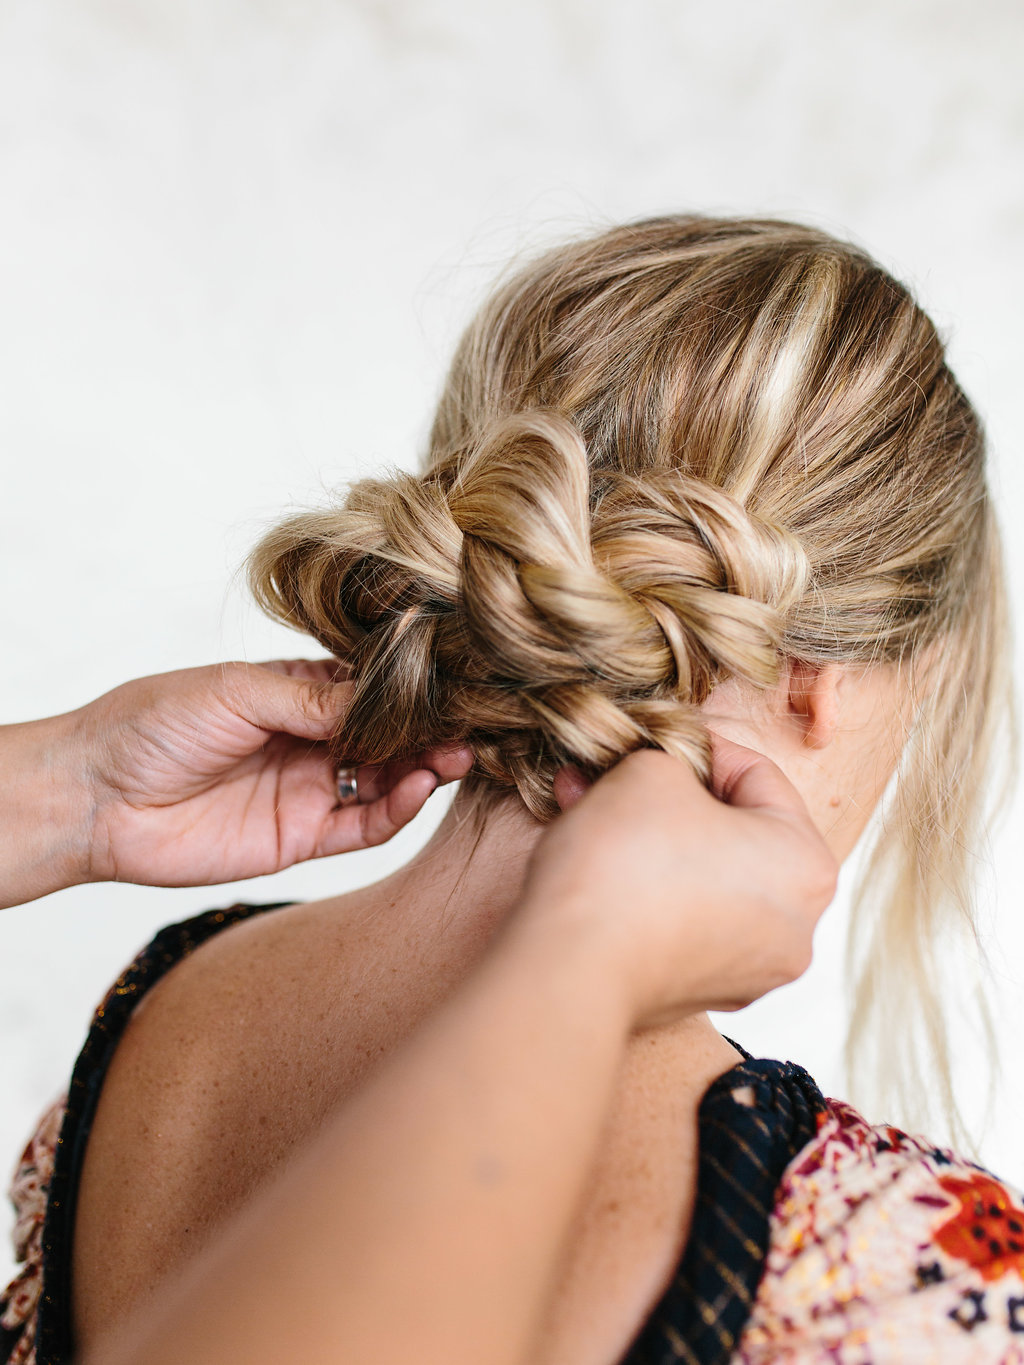 Last minute styling to the braided updo